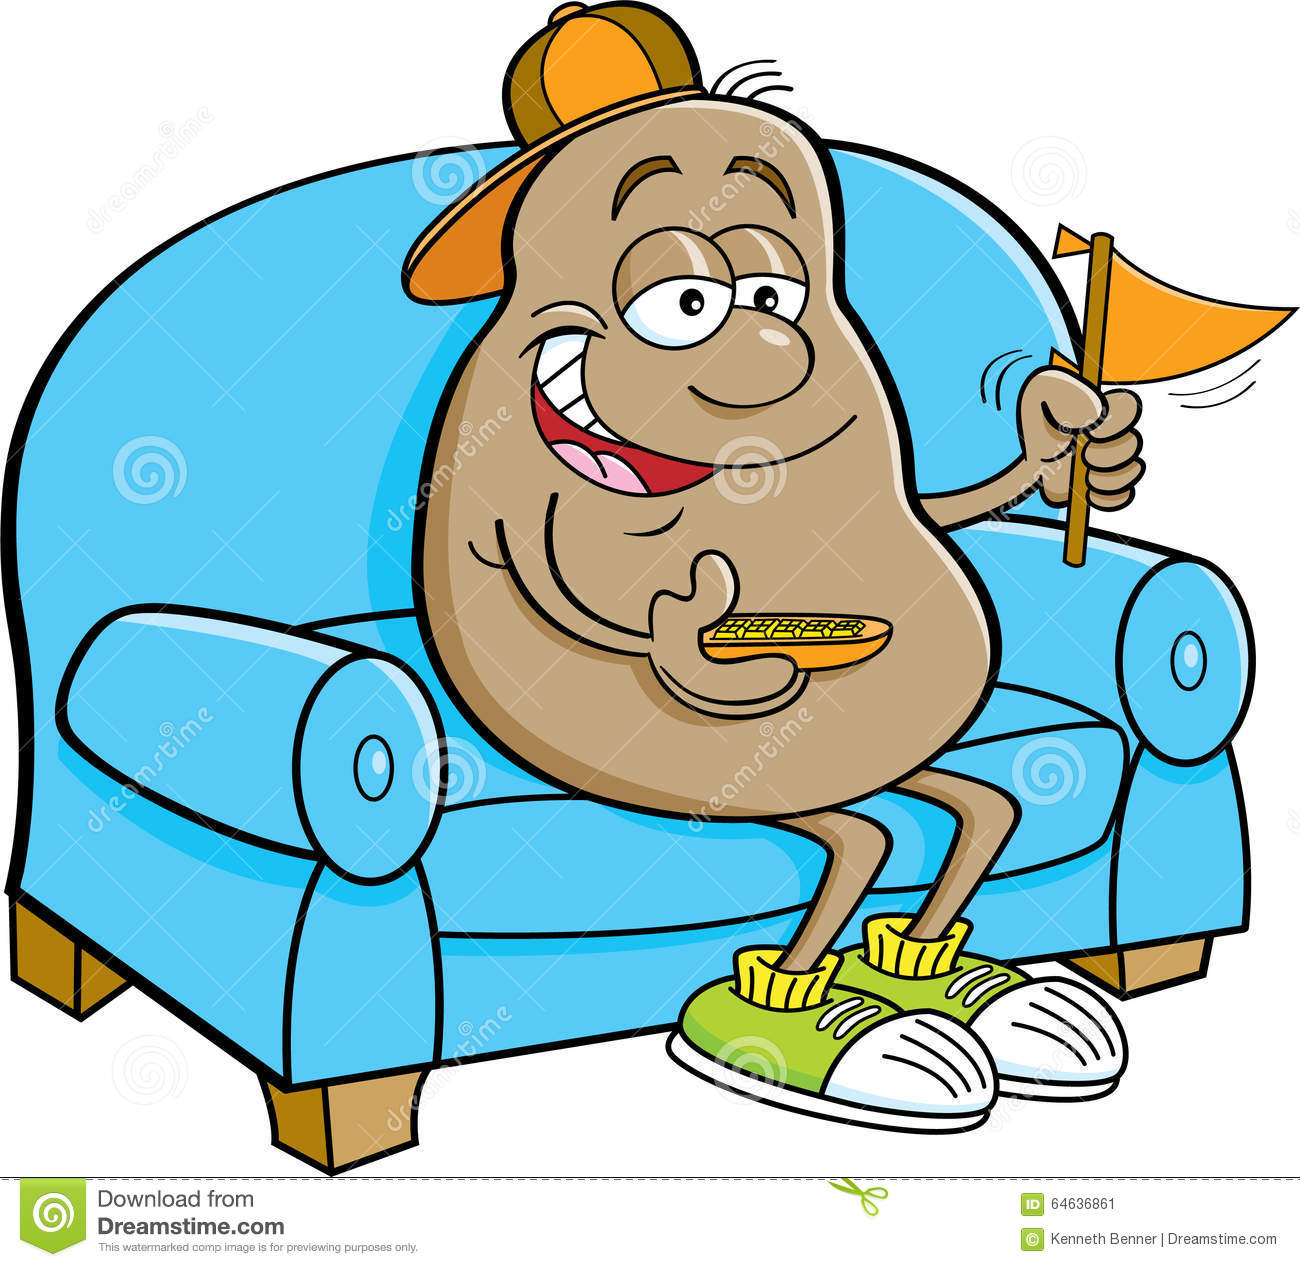 Cartoon Potato Sitting On A Couch And Holding A Pennant